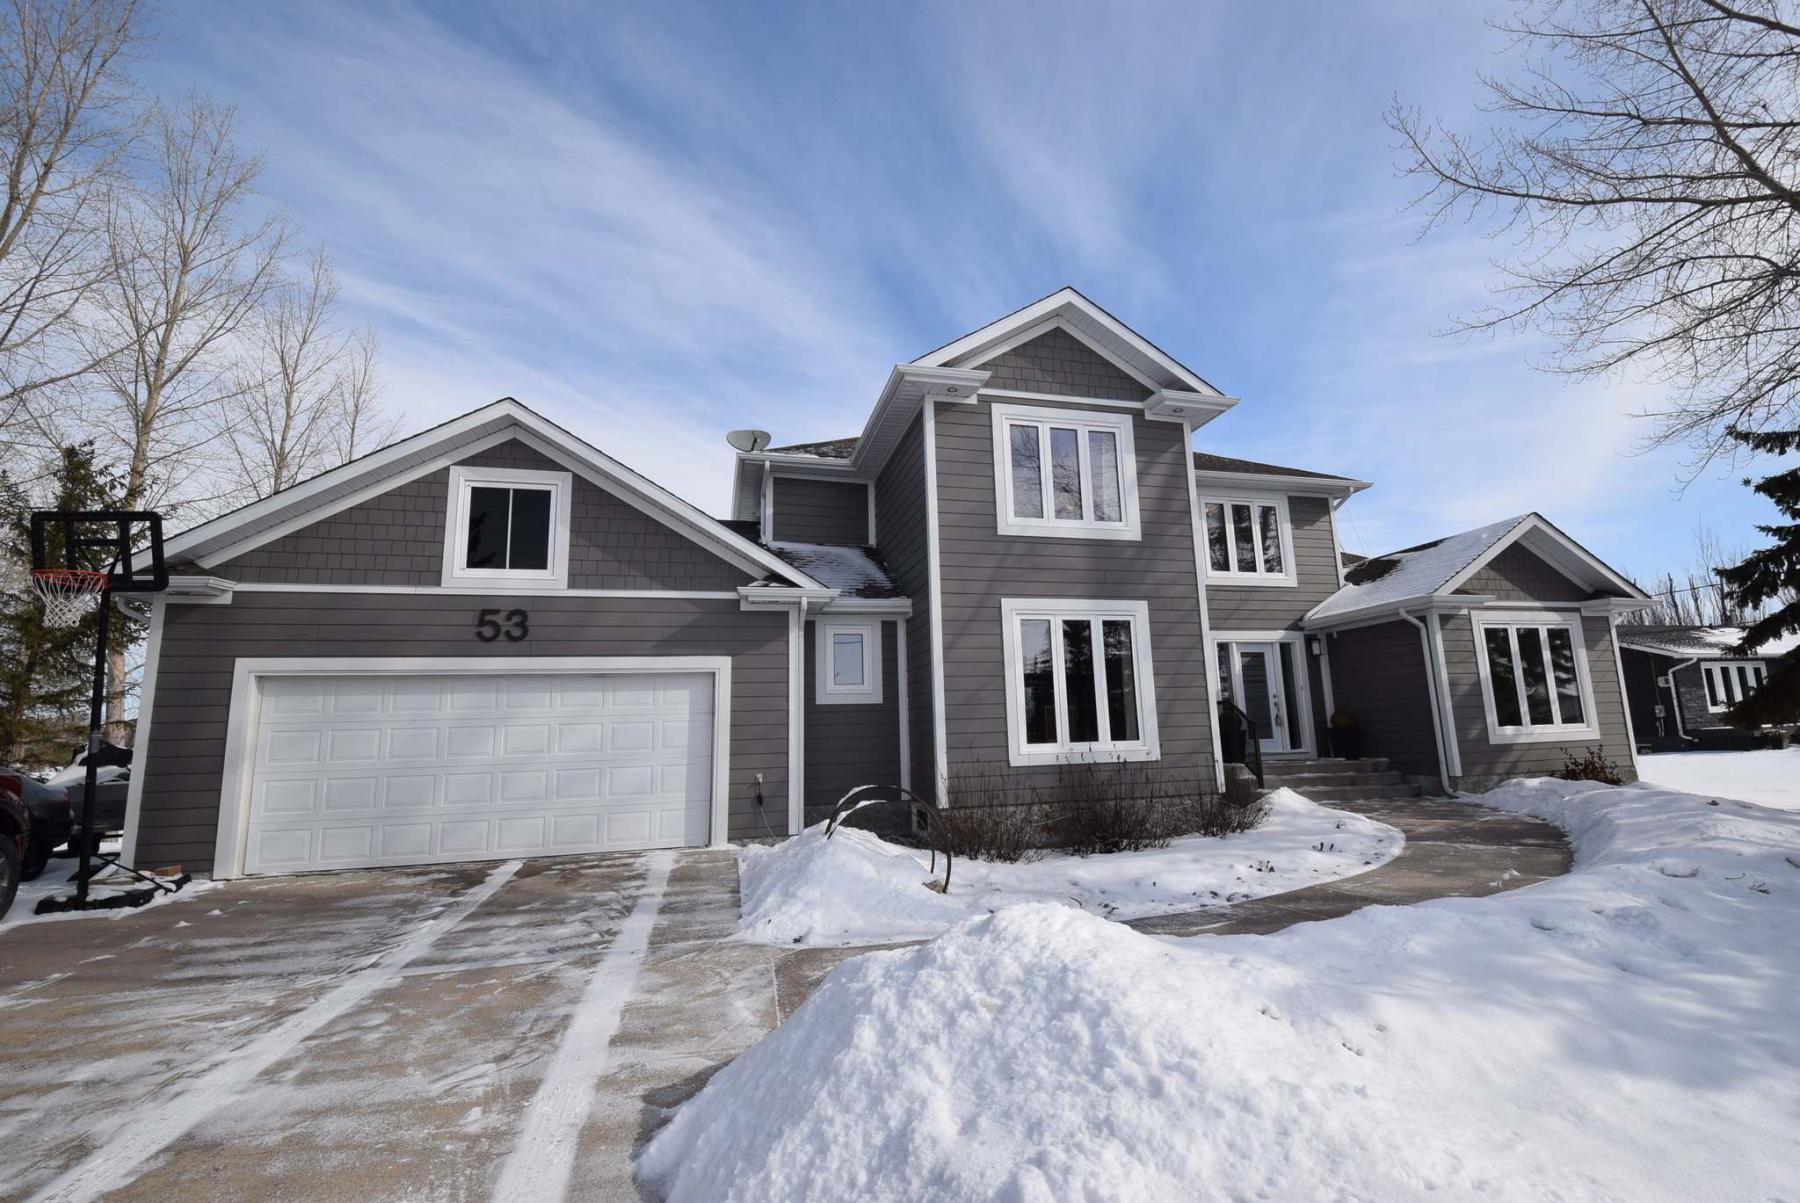 <p>Photos by Todd Lewys / Winnipeg Free Press</p><p>With its newer exterior, fresh windows, white garage door and sharp white trim, this home possesses immense curb appeal.</p>